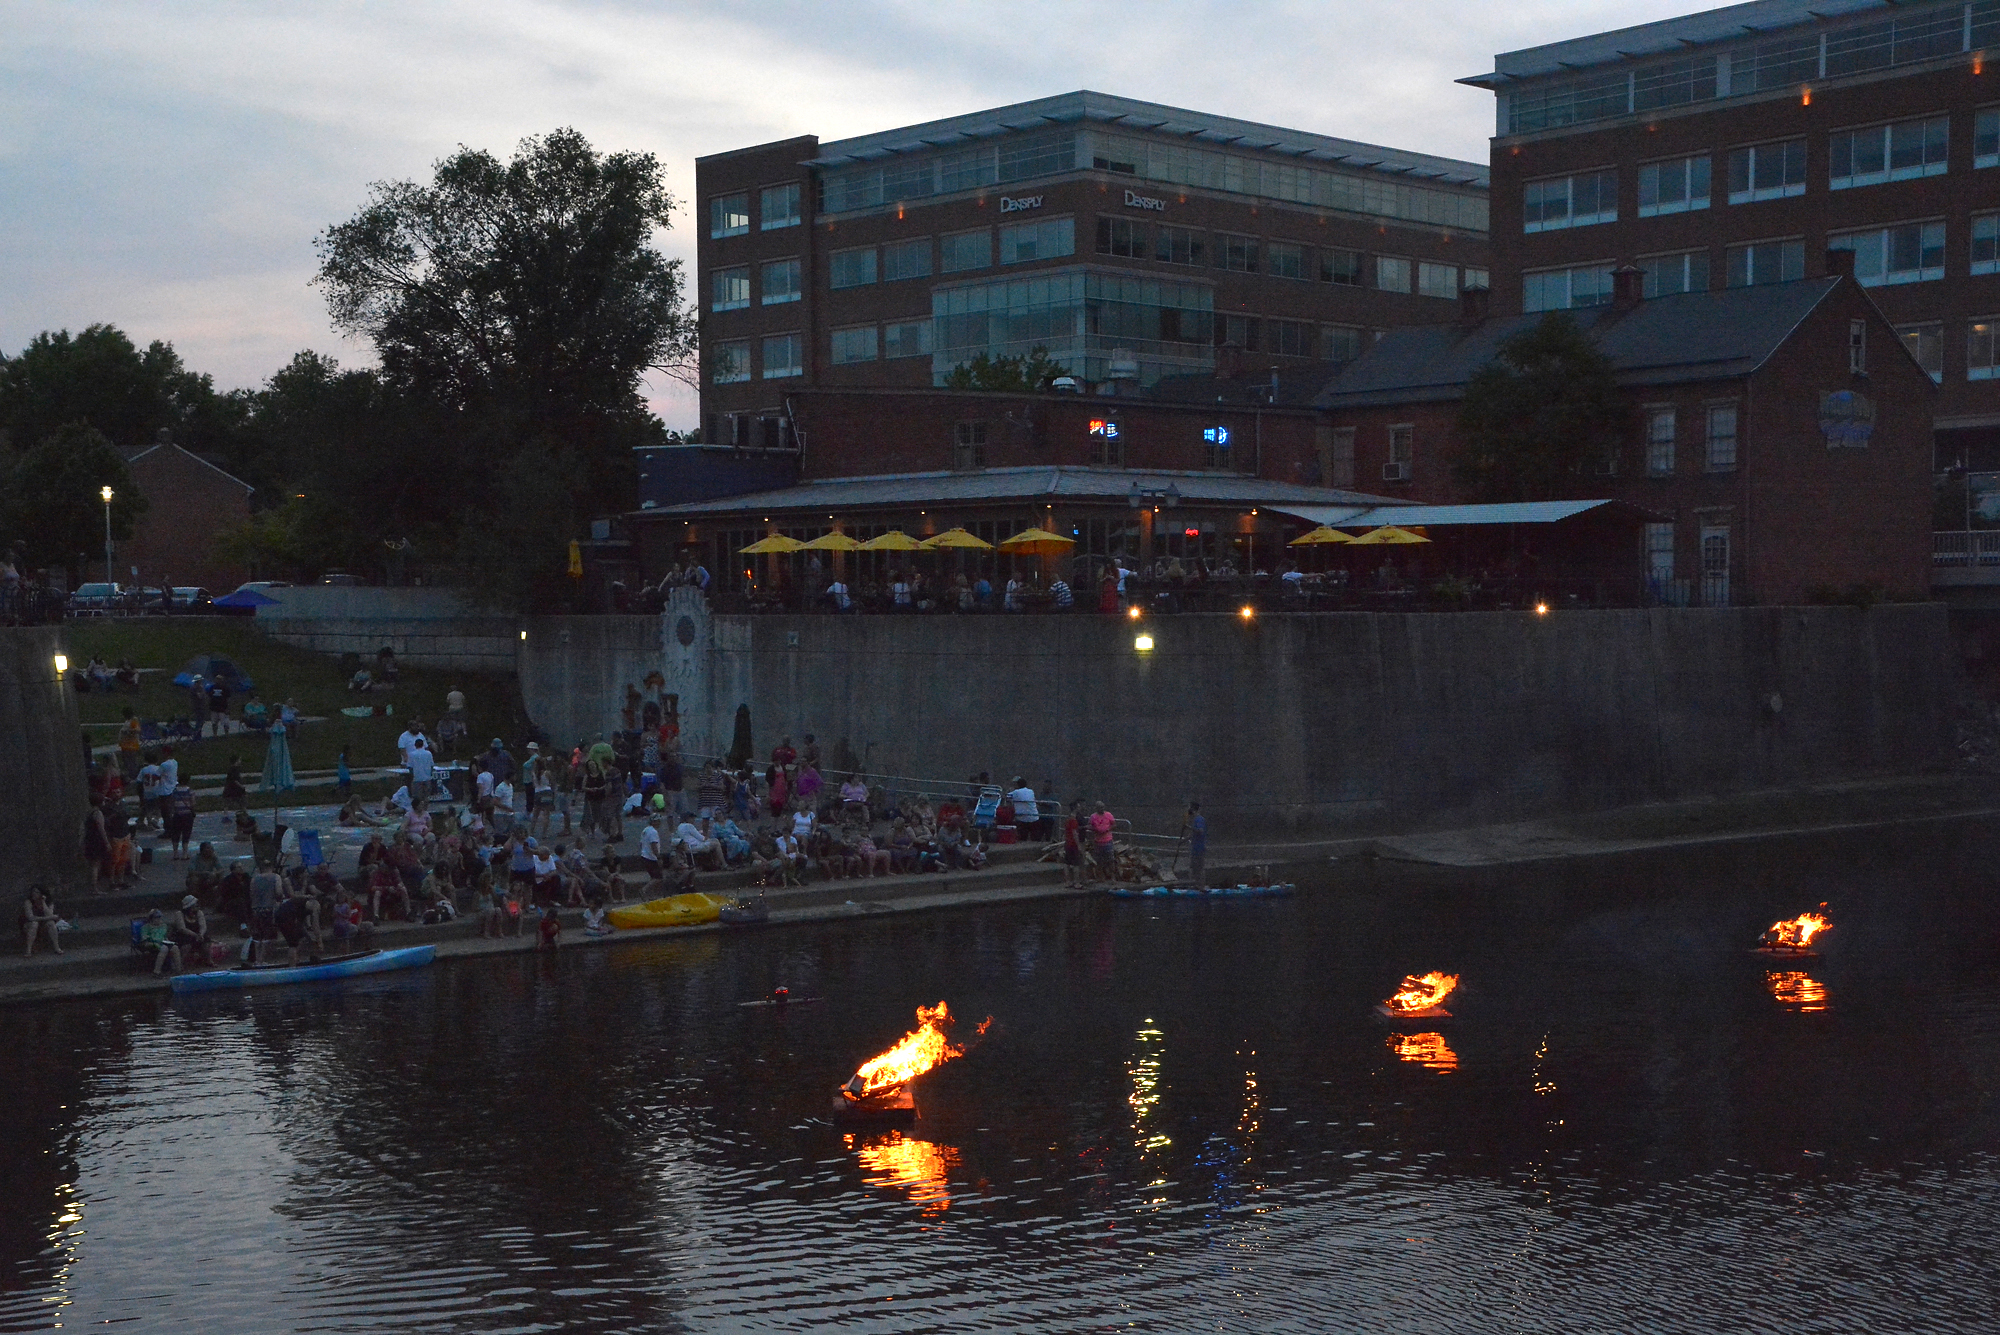 """The 2016 edition of Creek Fire kicked off at Foundry Park On The Codorus on Saturday, May 28, 2016.When it comes to the WeCo neighborhood in York, Pa., """"the vision overall would be to create a neighborhood that people want to be in – whether it's living there, visiting, going to an event,"""" says  Patrick Ness,Architectural designer and Associate at Murphy & Dittenhafer Architects. (Photo by  Randy Flaum)"""